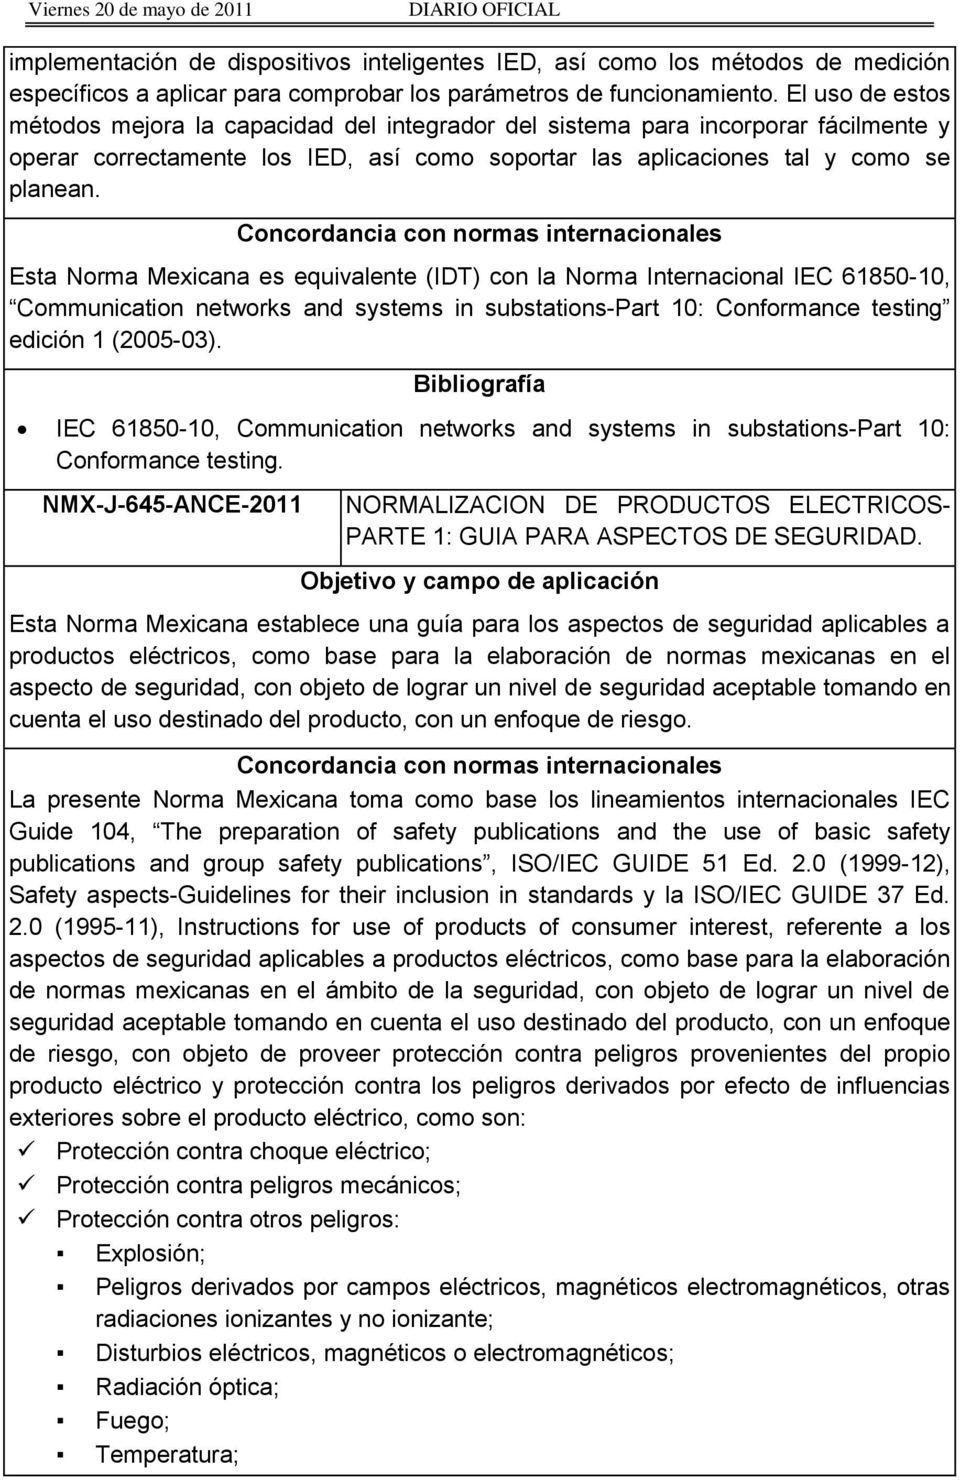 Esta Norma Mexicana es equivalente (IDT) con la Norma Internacional IEC 61850-10, Communication networks and systems in substations-part 10: Conformance testing edición 1 (2005-03).